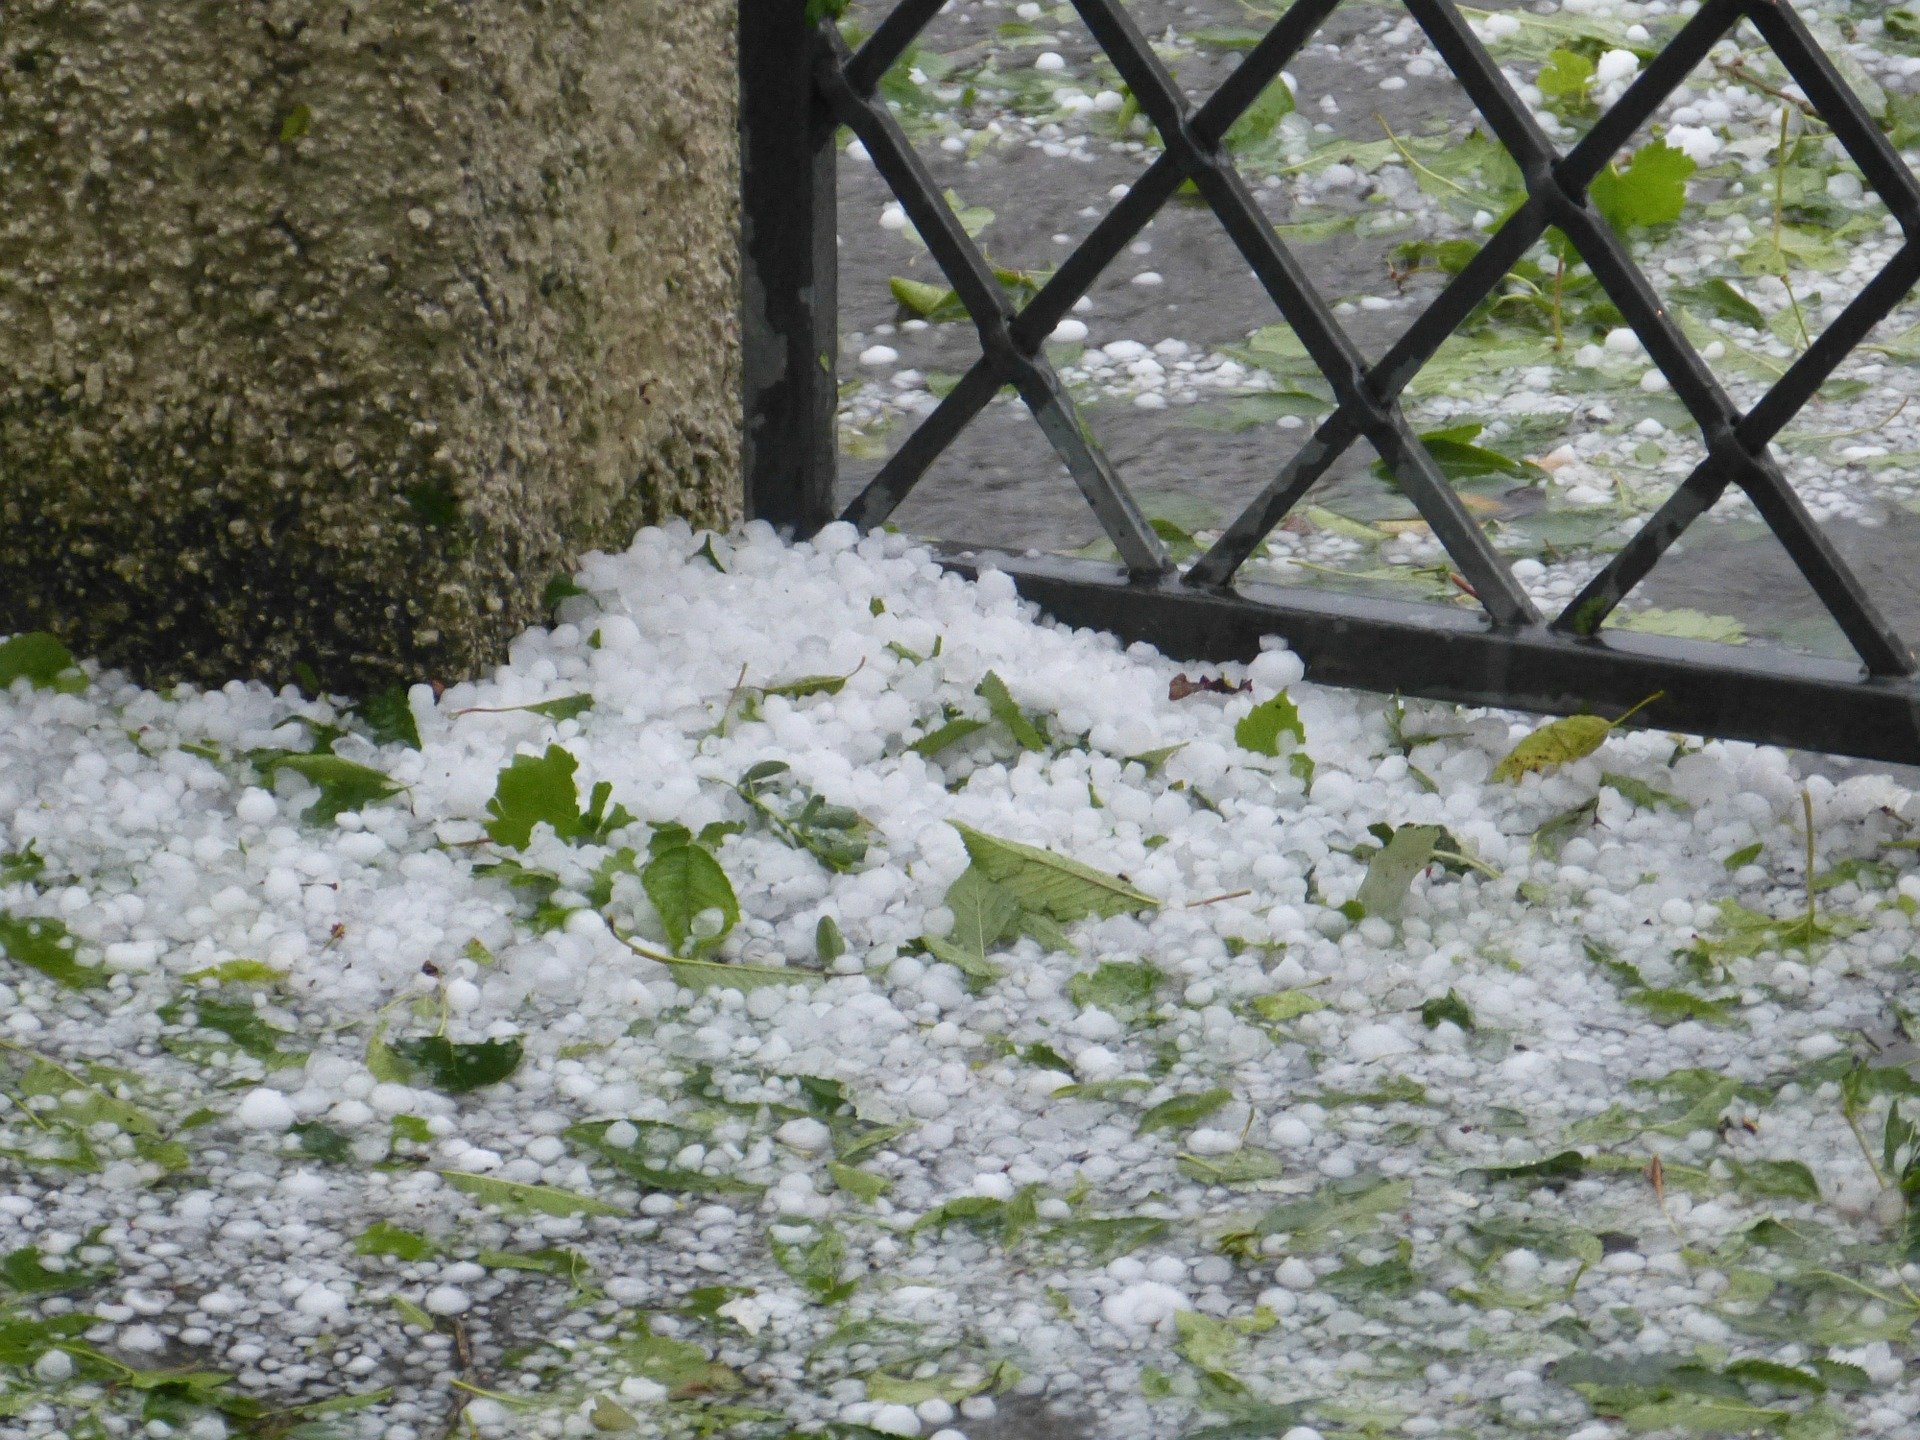 hail accumulation on ground